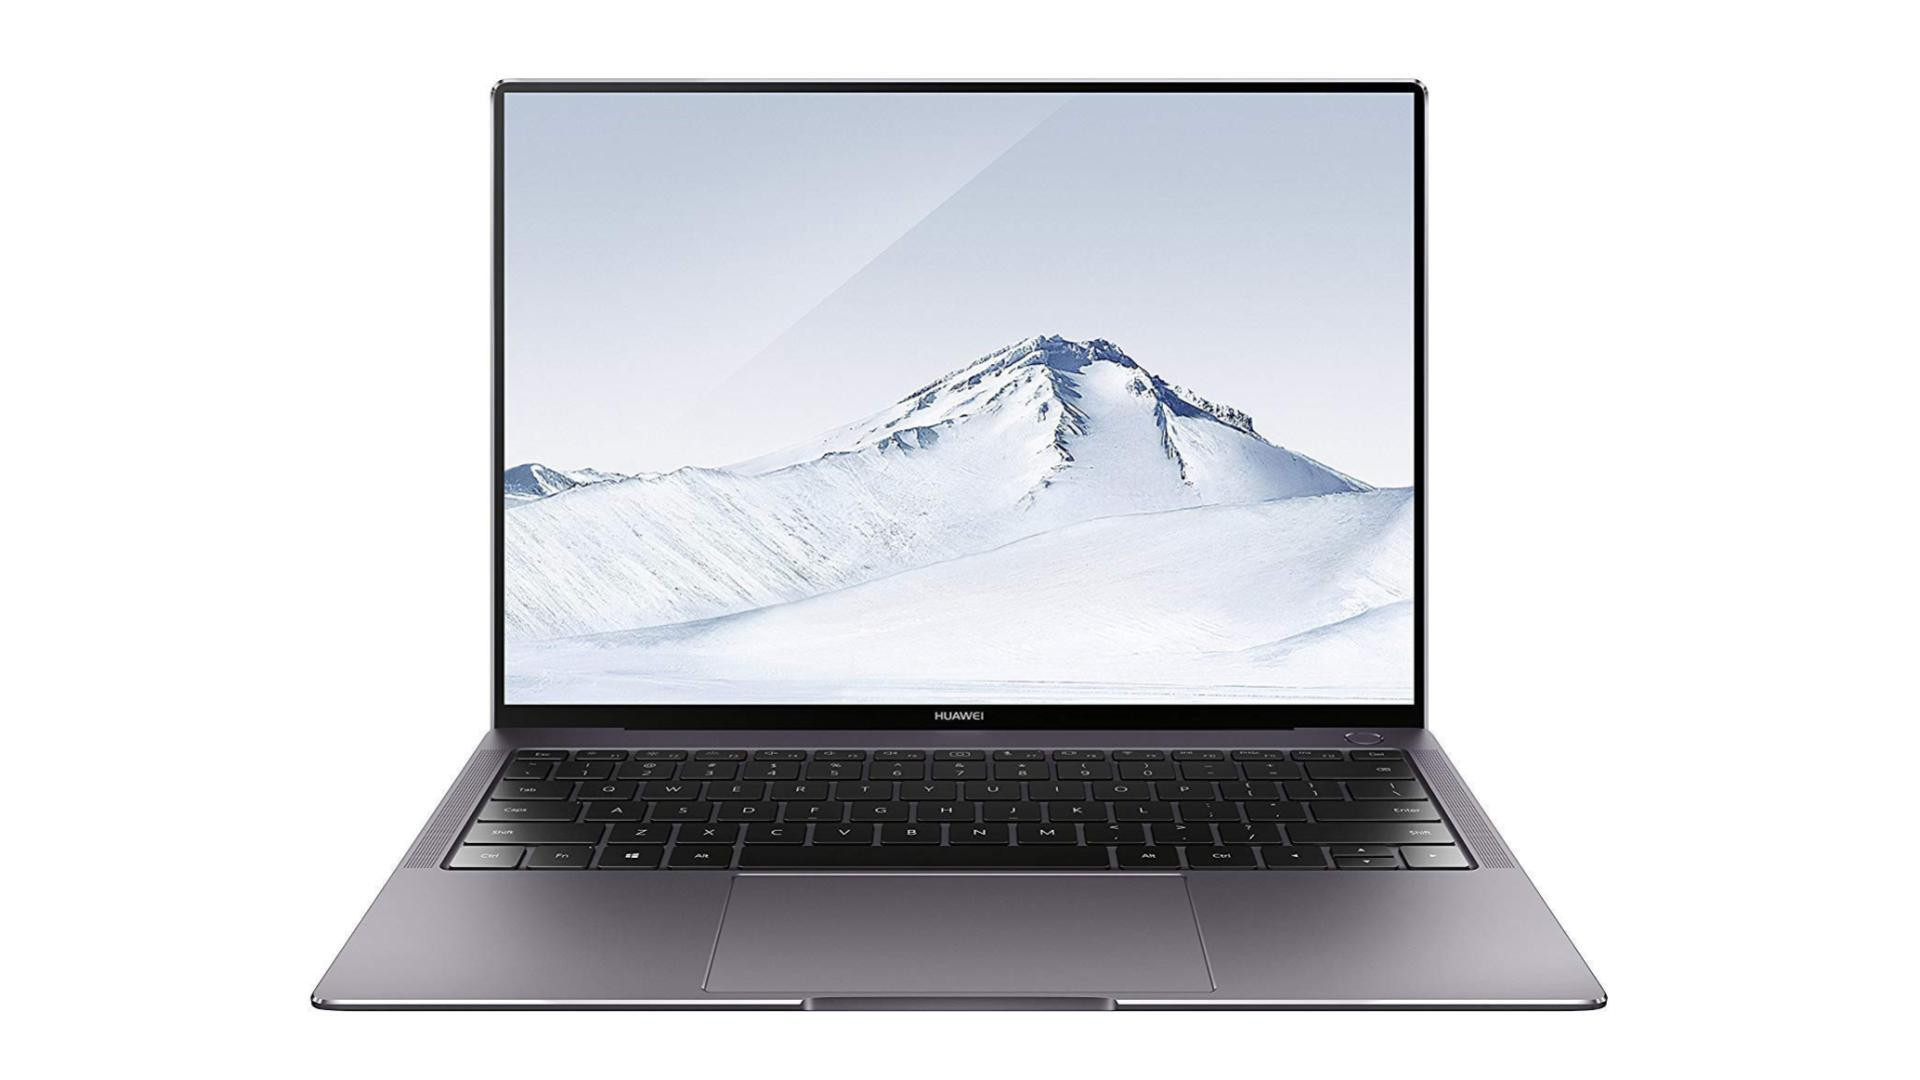 🔥 Black Friday : le MateBook X Pro à 1199 euros au lieu de 1499 euros chez Amazon